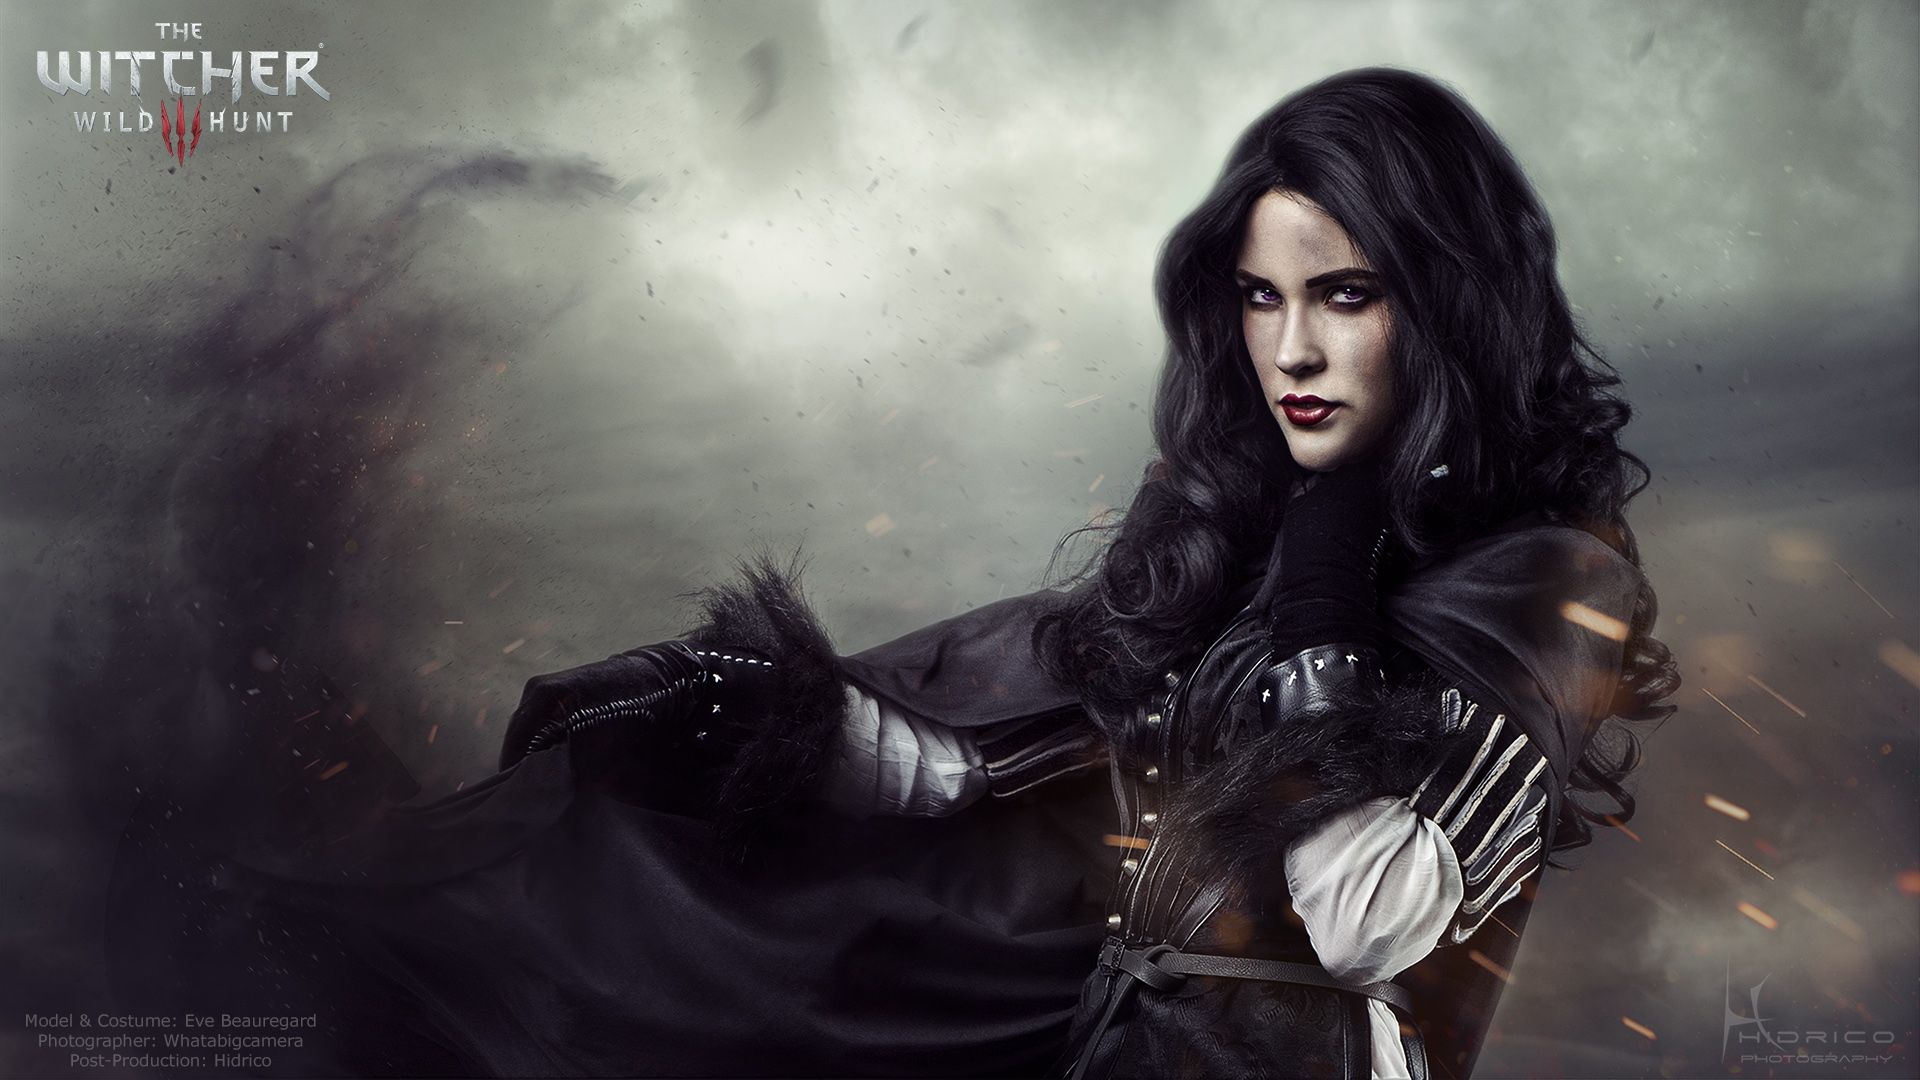 Witcher Yennefer, Free Wallpaper and Background